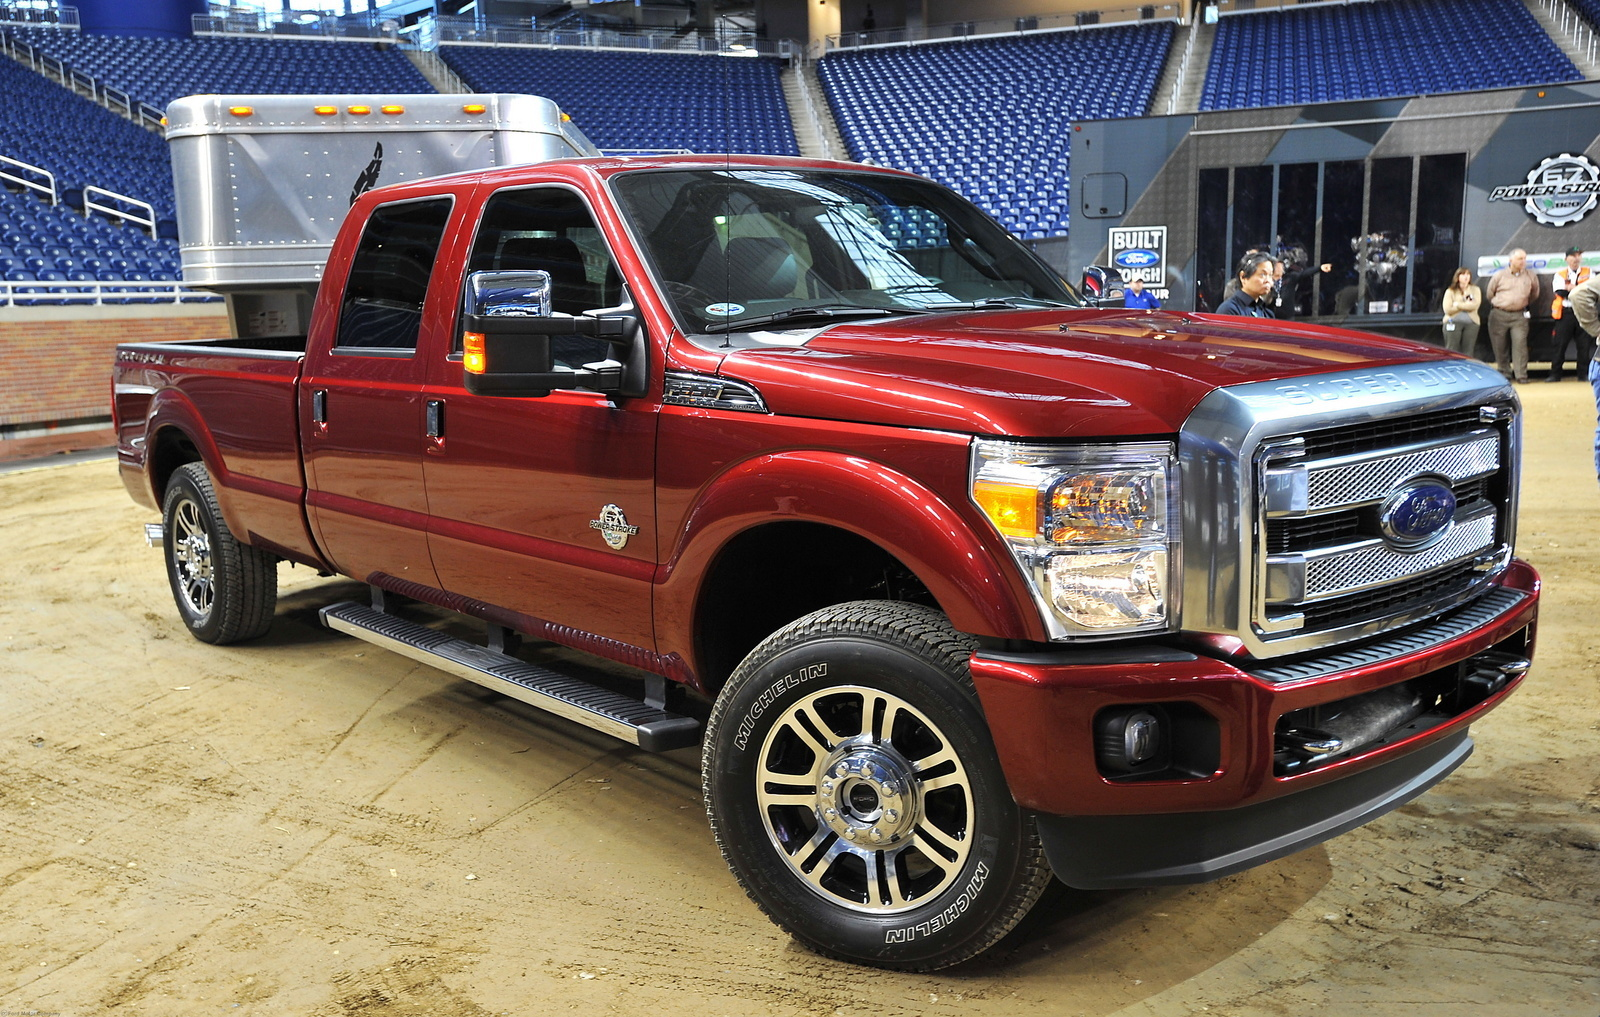 Ford F250 Towing Capacity >> 2013 Ford F-250 Super Duty - Overview - CarGurus